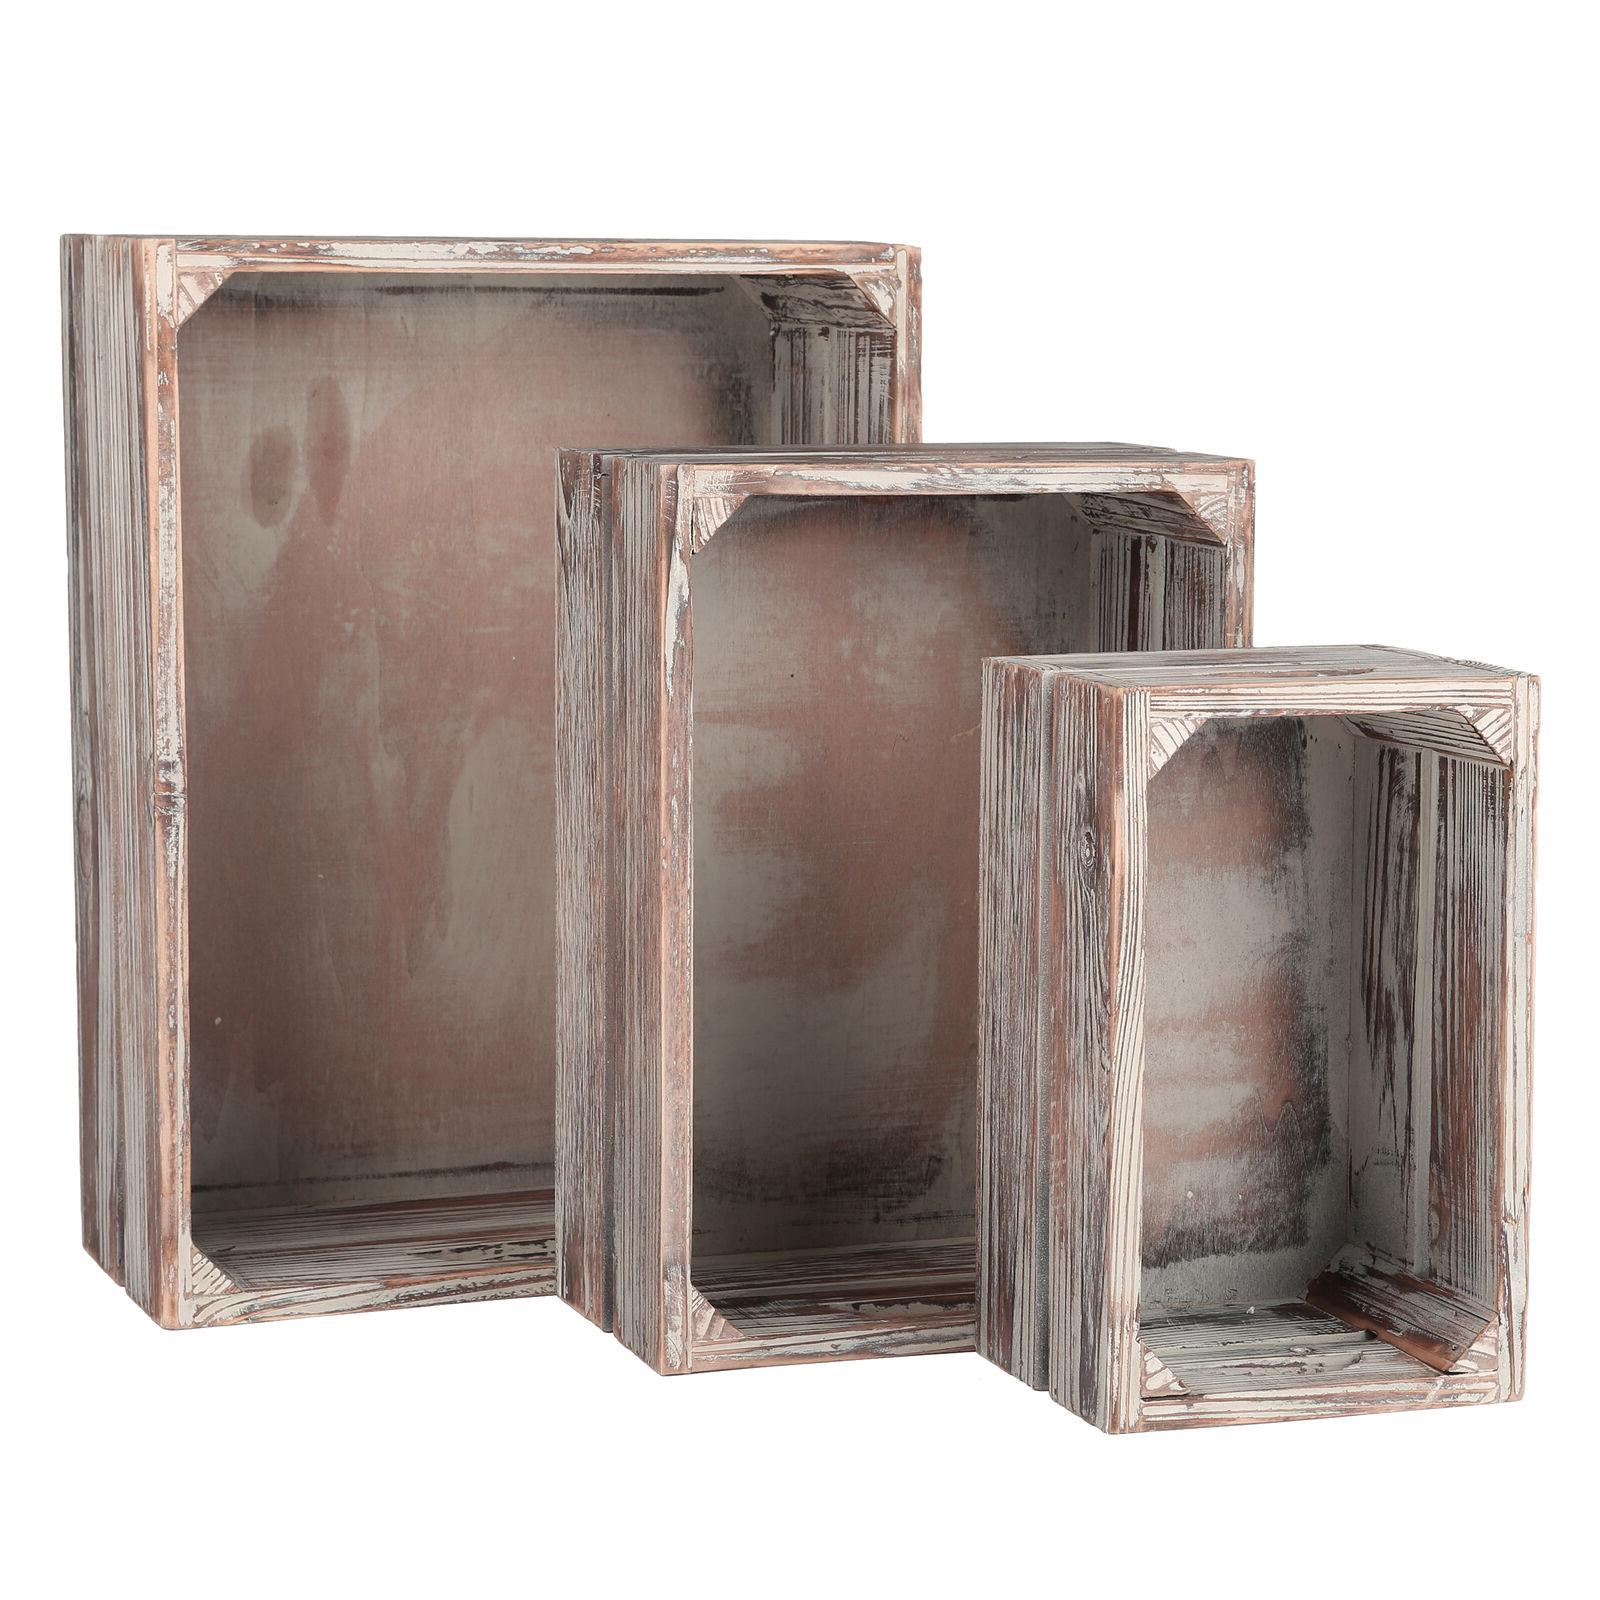 Set 3 Rustic Finish Nesting Boxes Containers